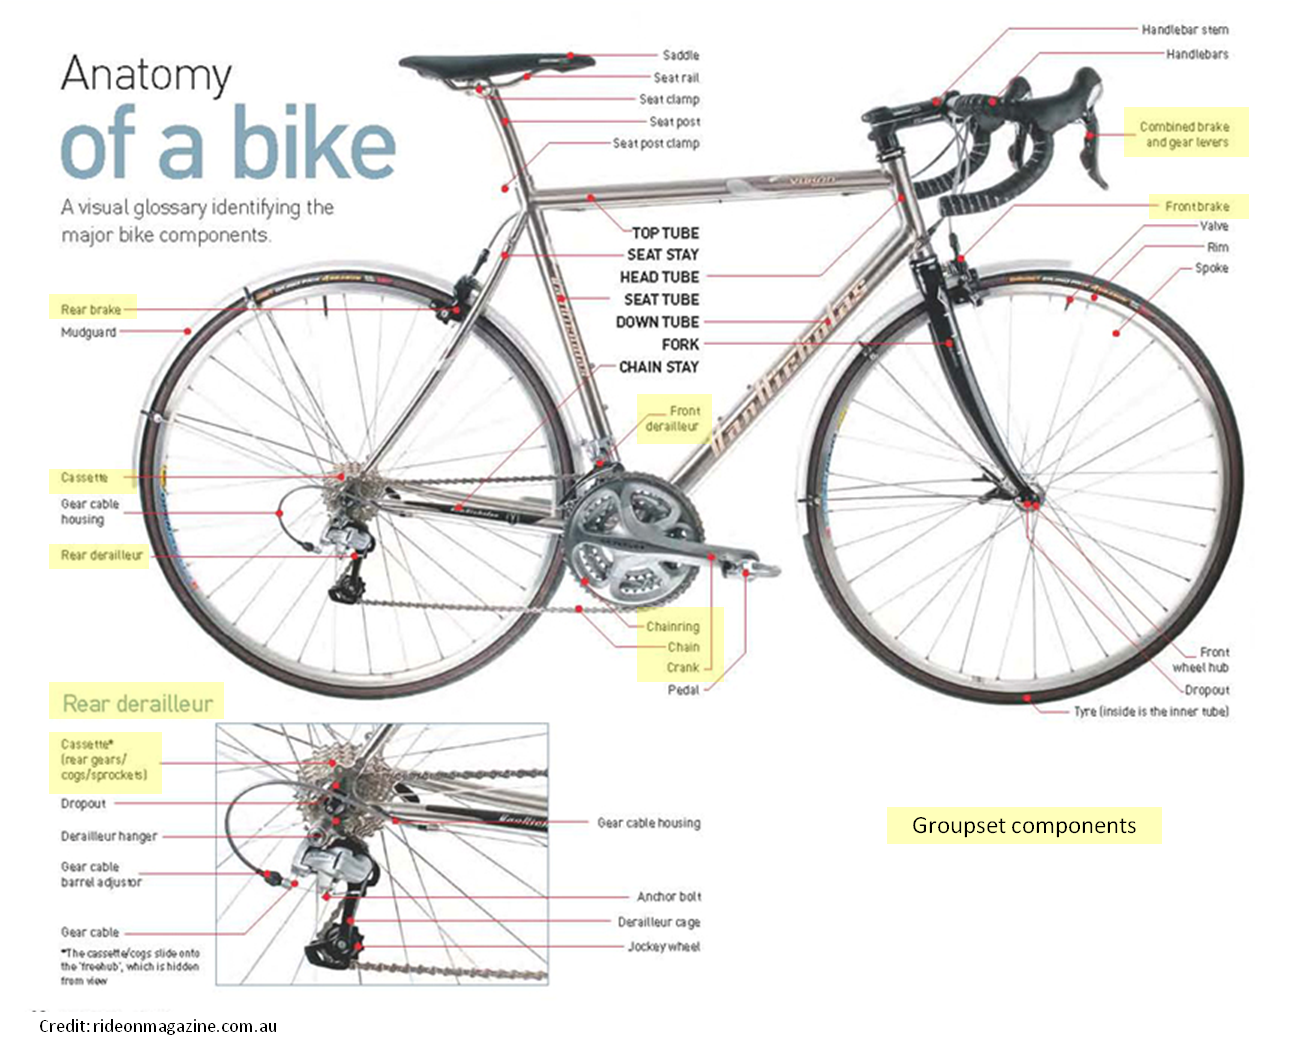 intheknowcycling.files.wordpress.com 2014 06 anatomy-of-a-bike ...